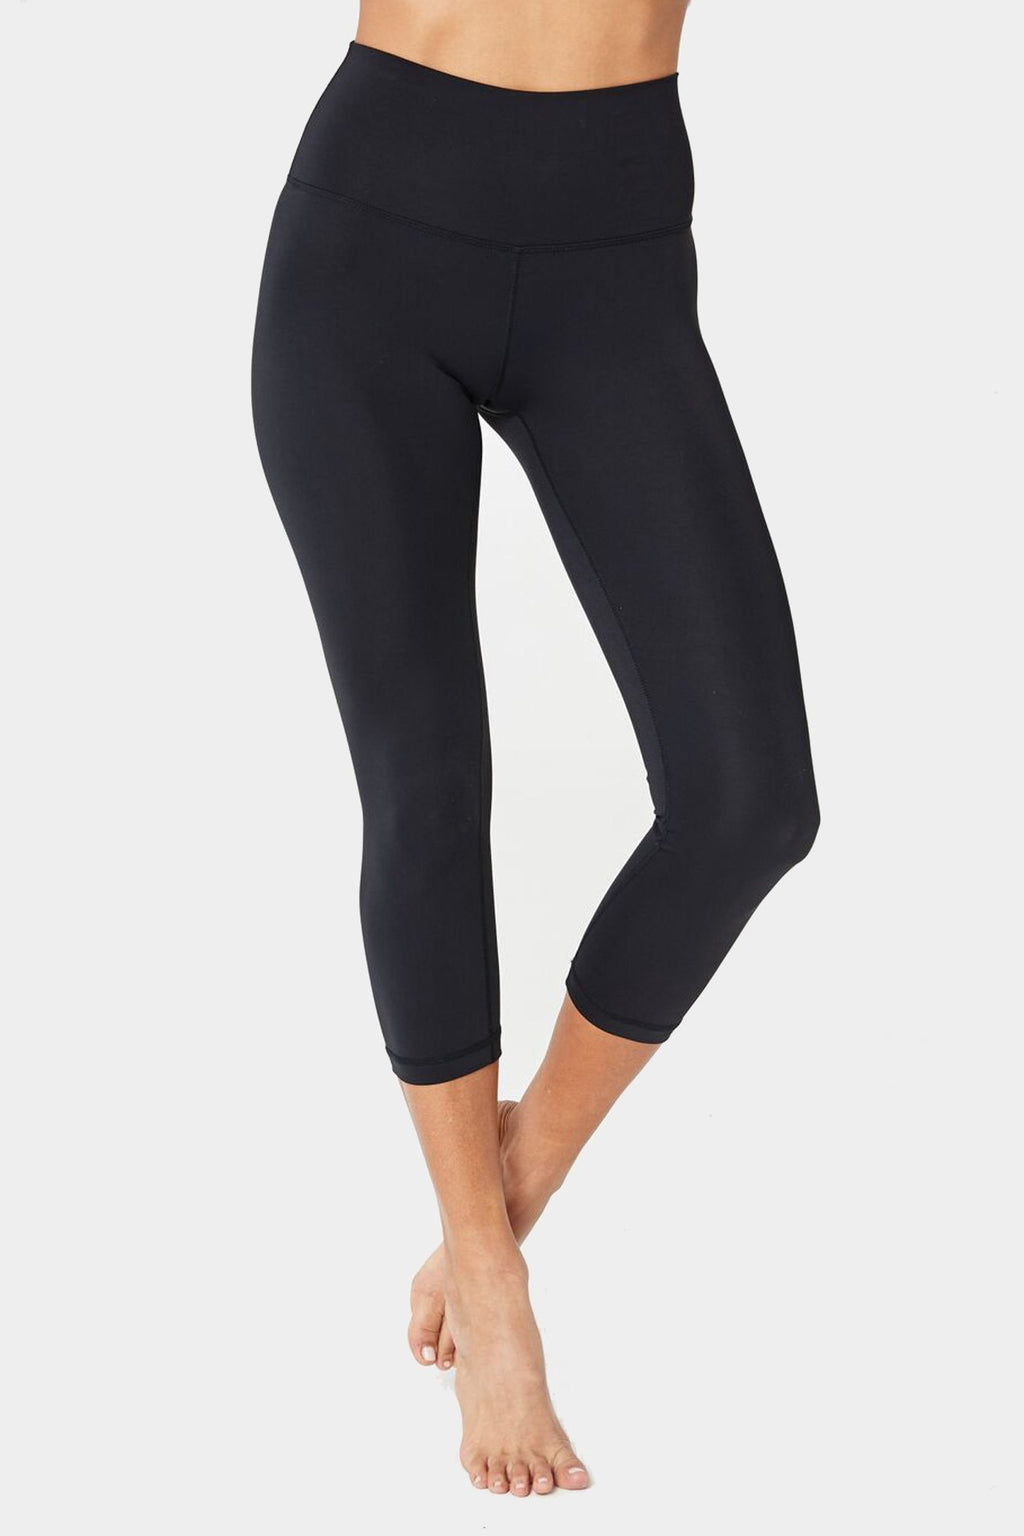 Spiritual Gangster - Perfect High Waist Crop Legging